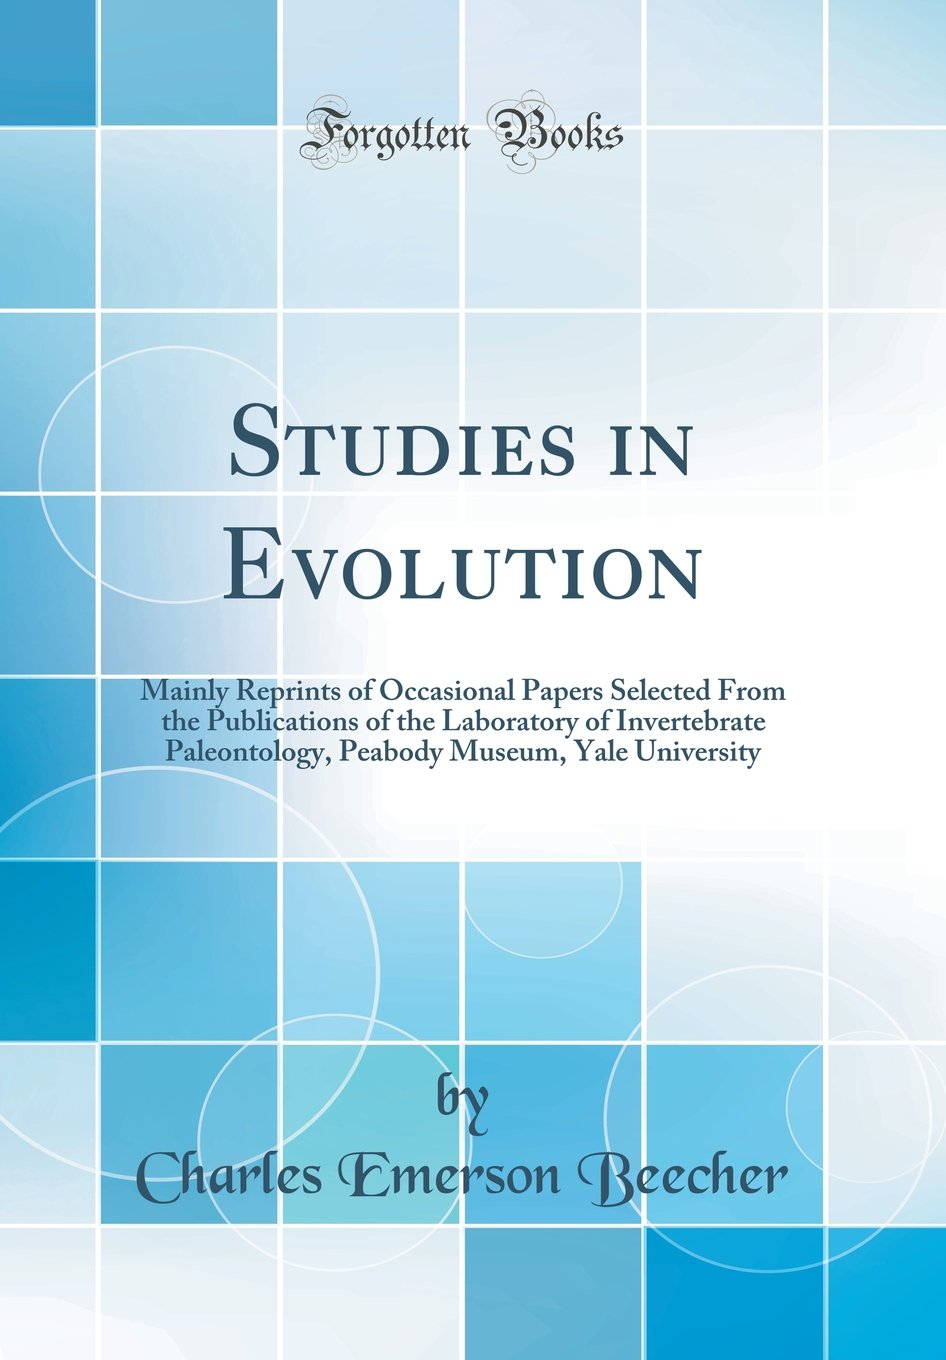 Download Studies in Evolution: Mainly Reprints of Occasional Papers Selected From the Publications of the Laboratory of Invertebrate Paleontology, Peabody Museum, Yale University (Classic Reprint) PDF